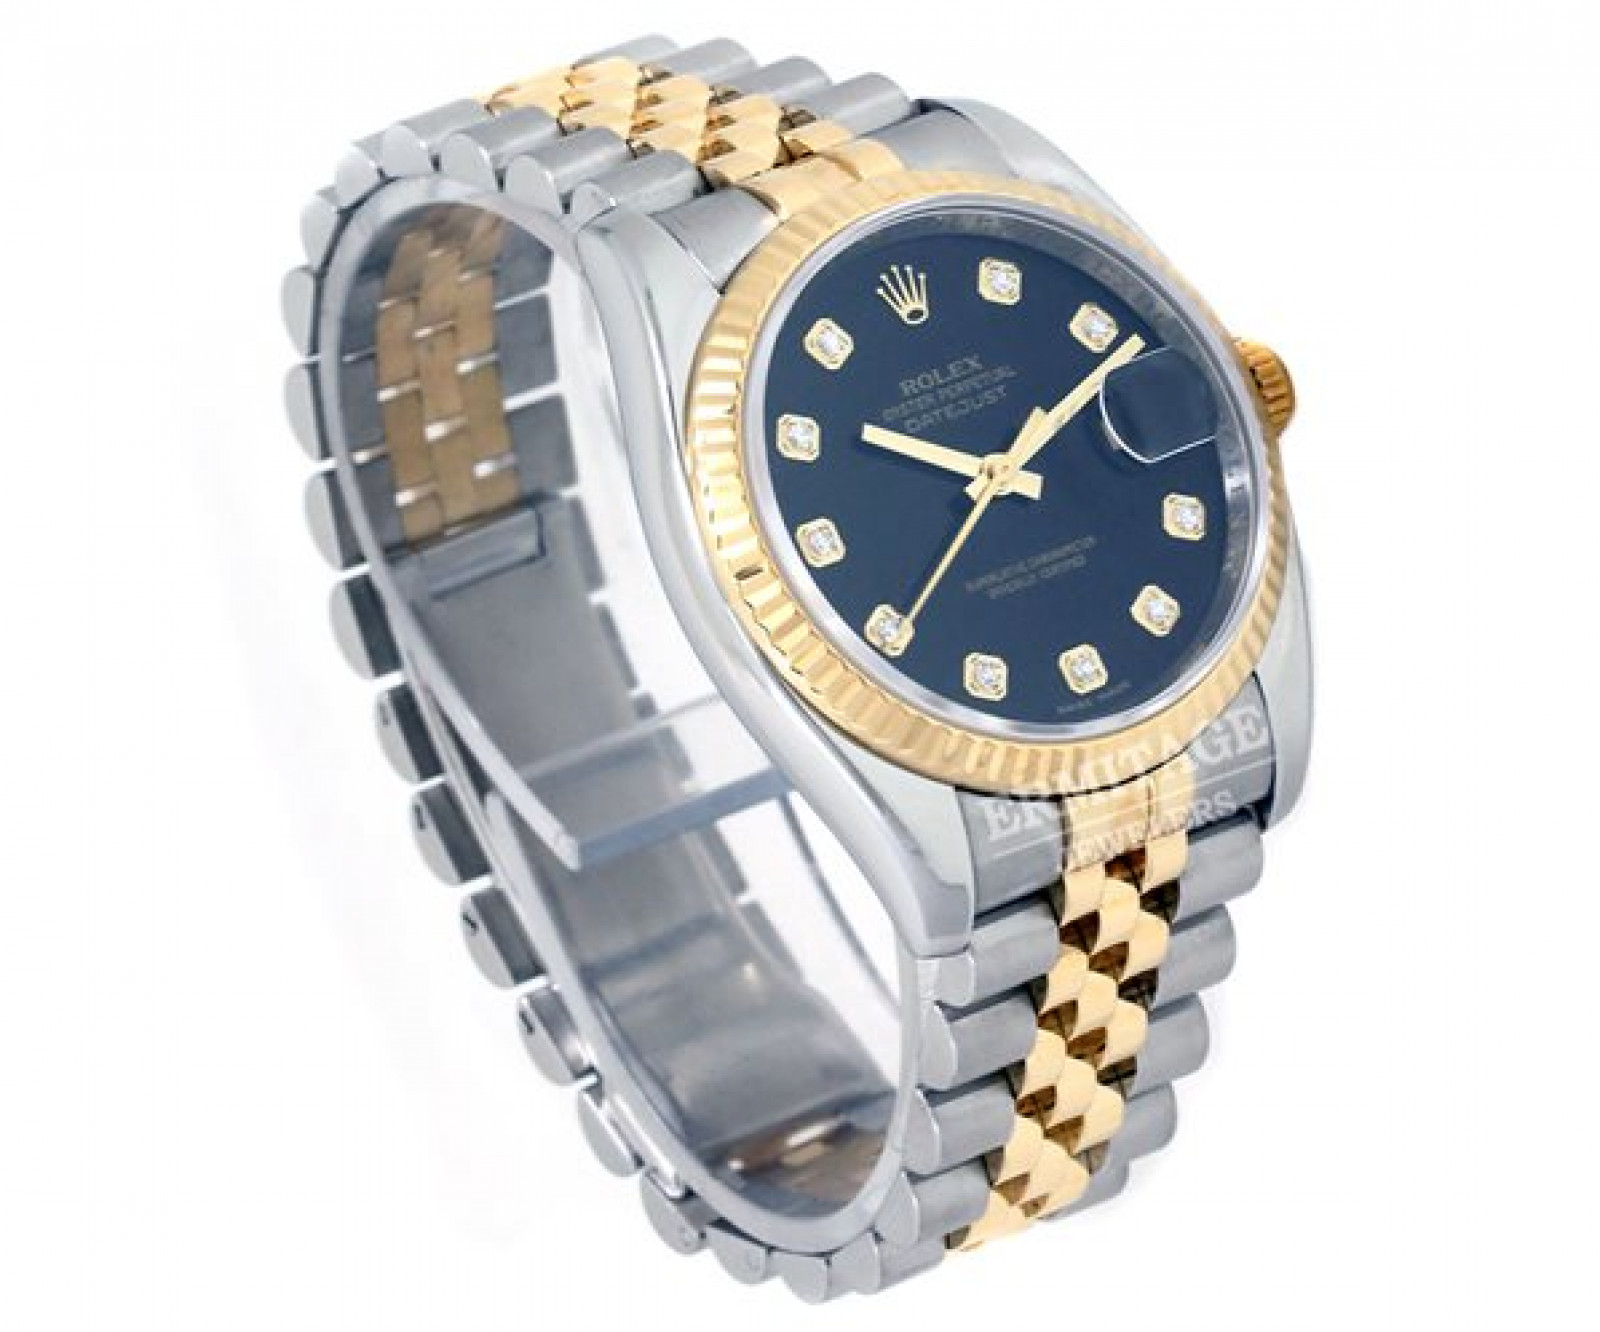 Pre-Owned Two Tone Rolex Datejust 116233 with Diamonds